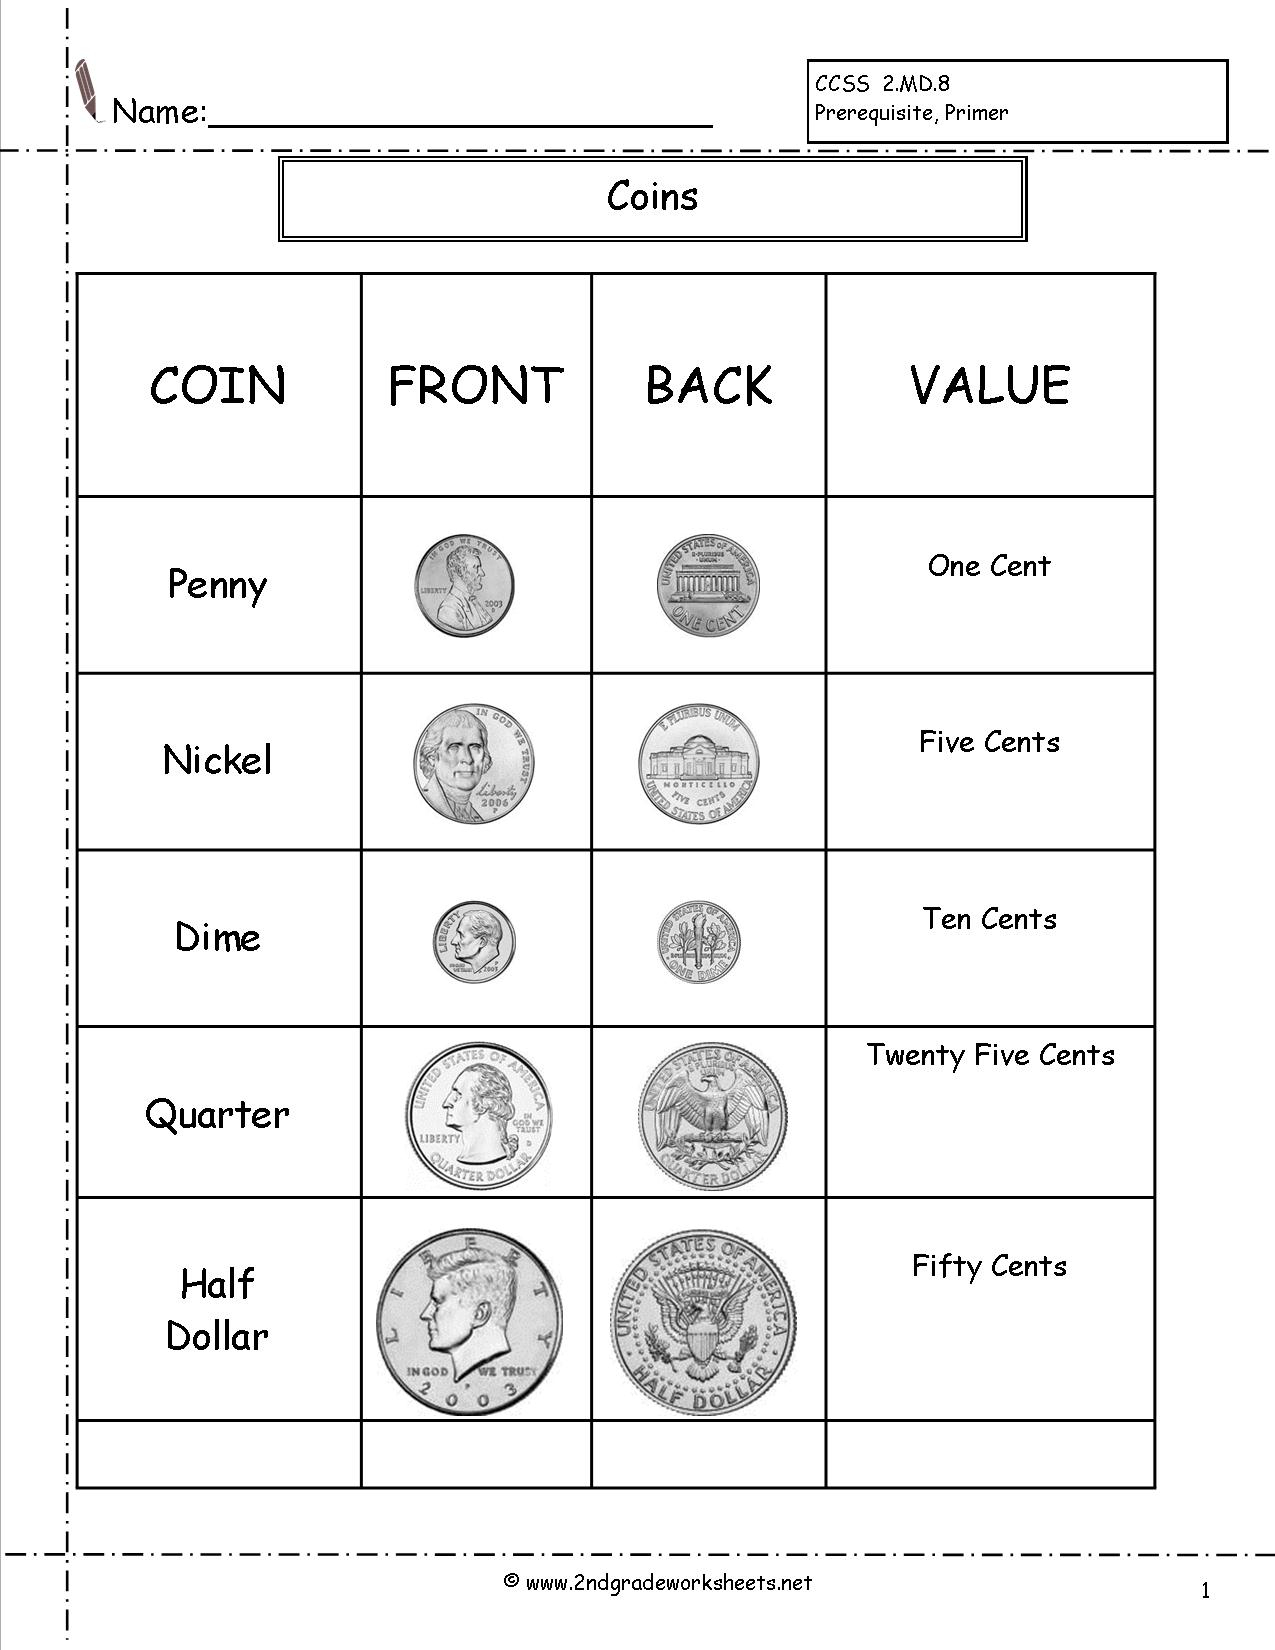 Counting Coins And Money Worksheets And Printouts - Free Printable Making Change Worksheets